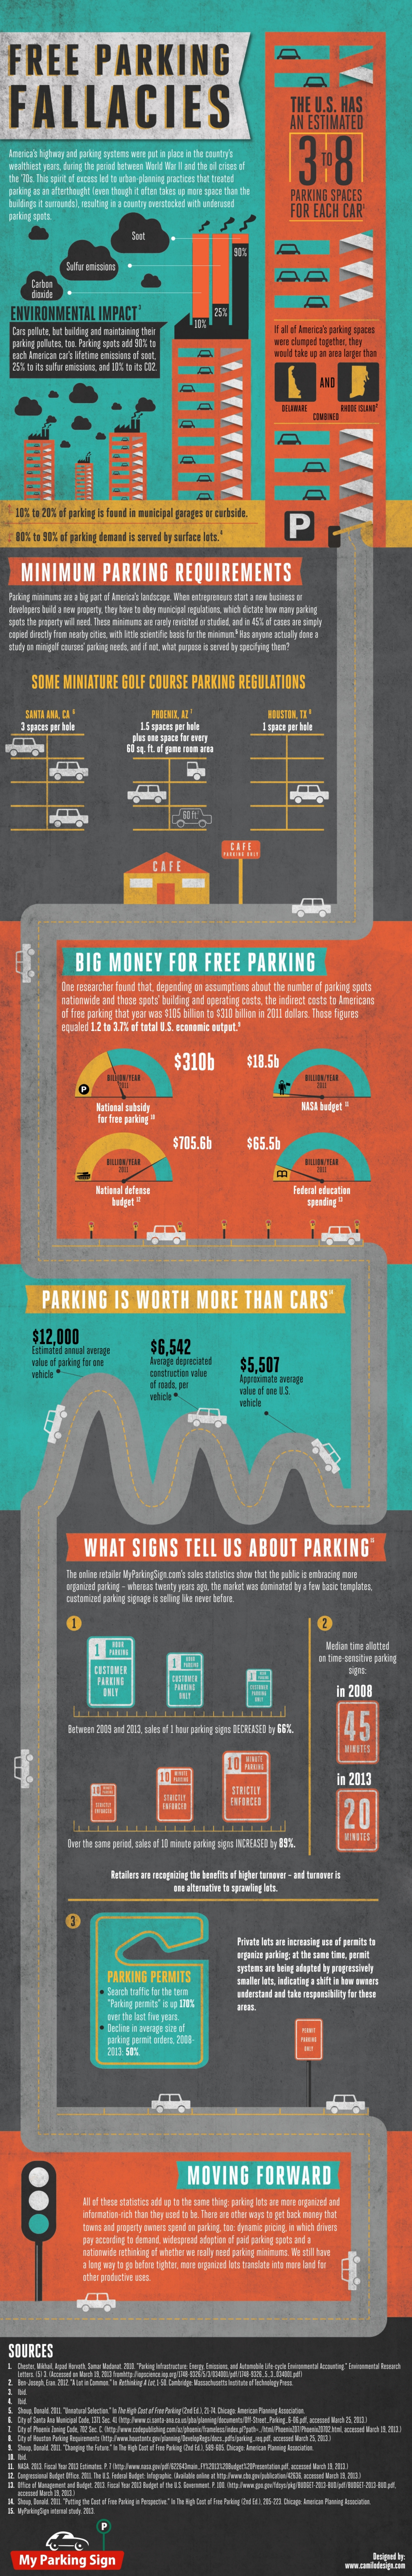 Free Parking Fallacies Infographic